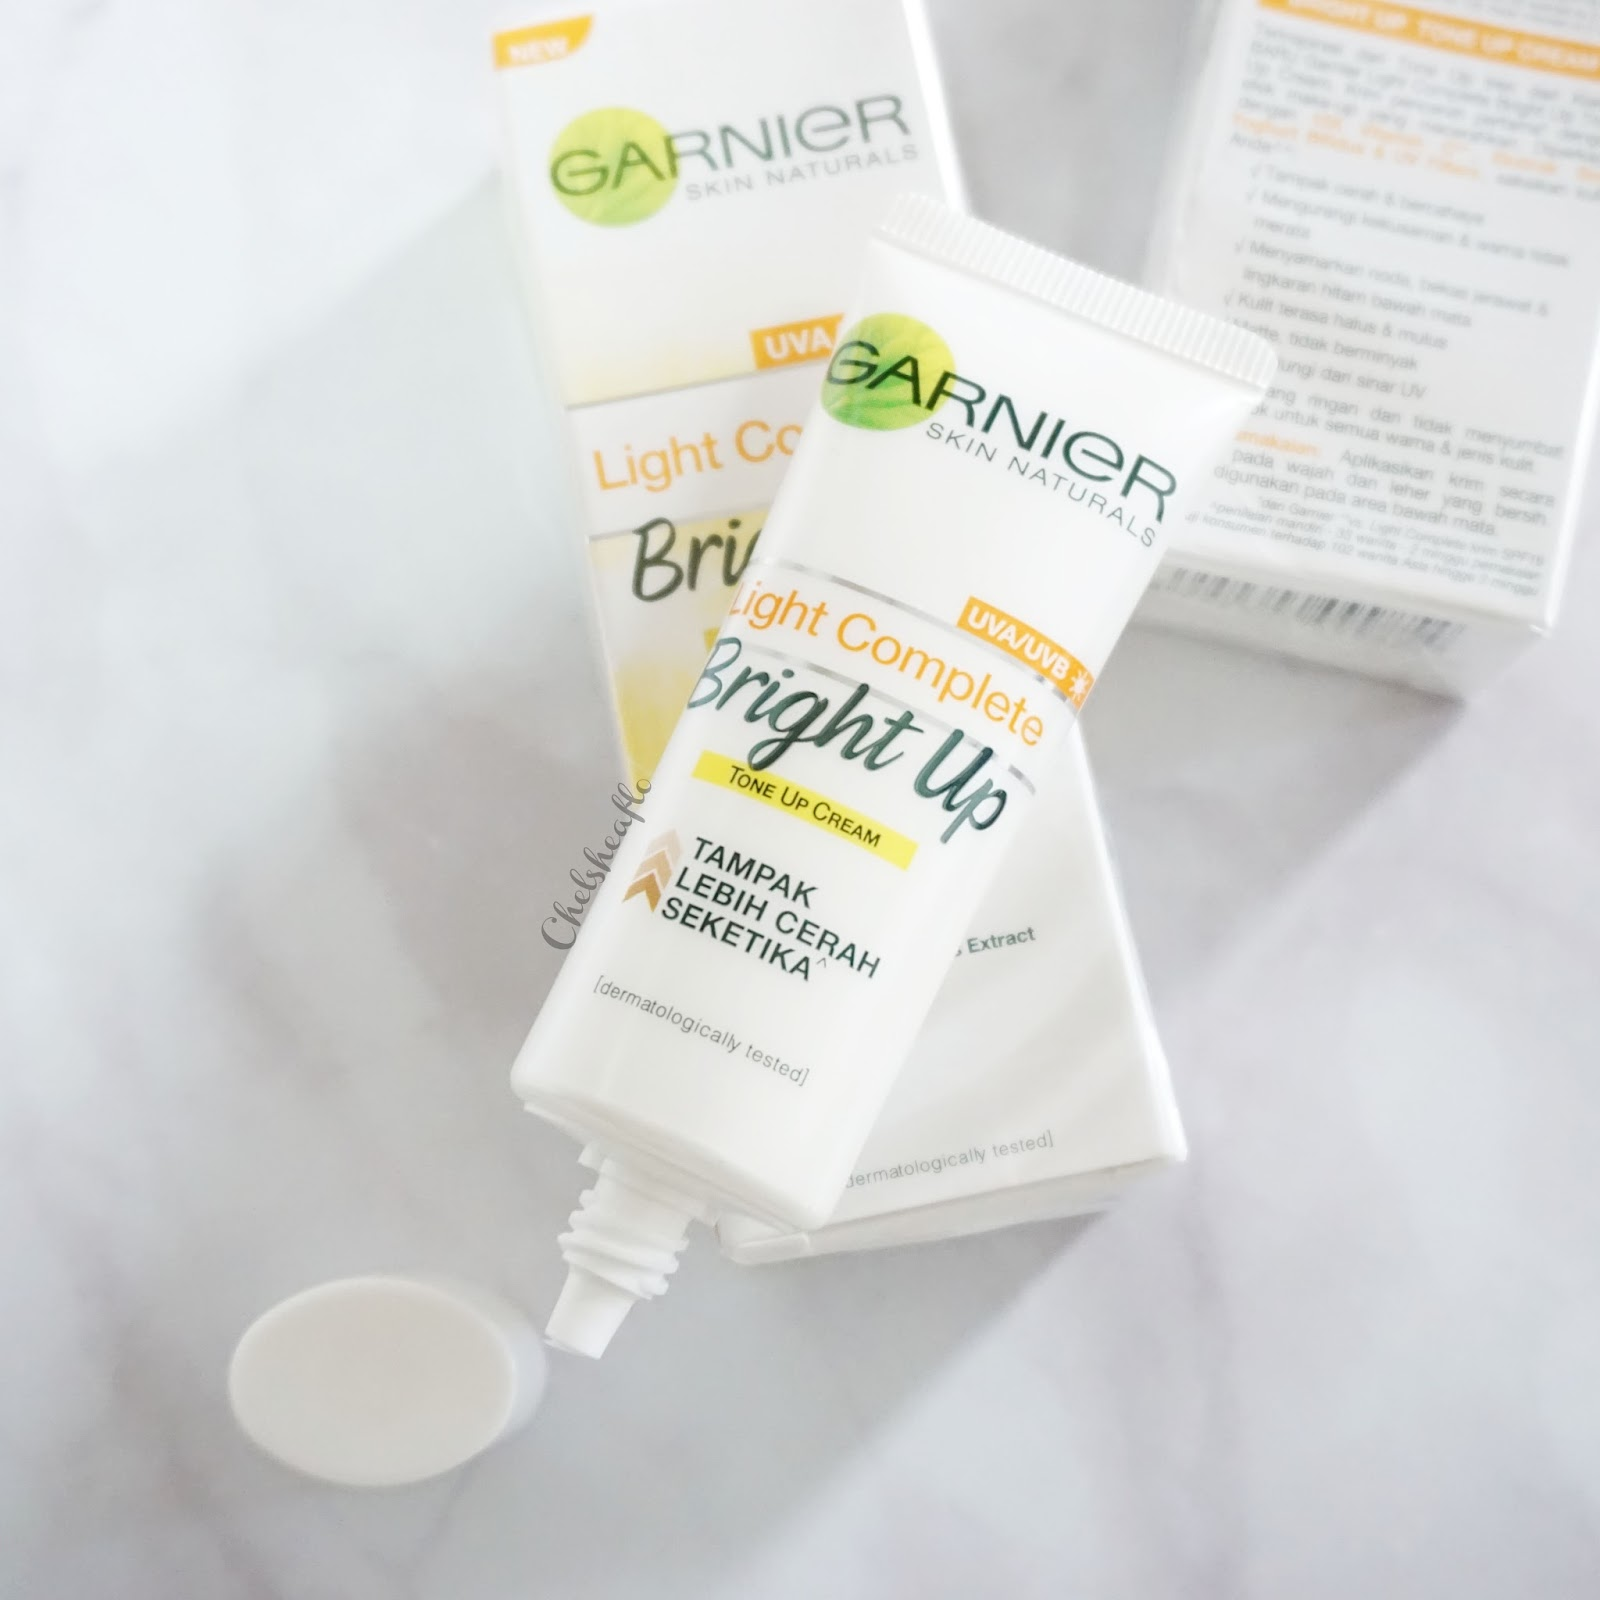 Review Garnier Light Complete Bright Up Tone Cream Cosmetics 15 Ml Apply Sufficient Amount Of The Onto Face As Moisturizer Before Applying Makeup